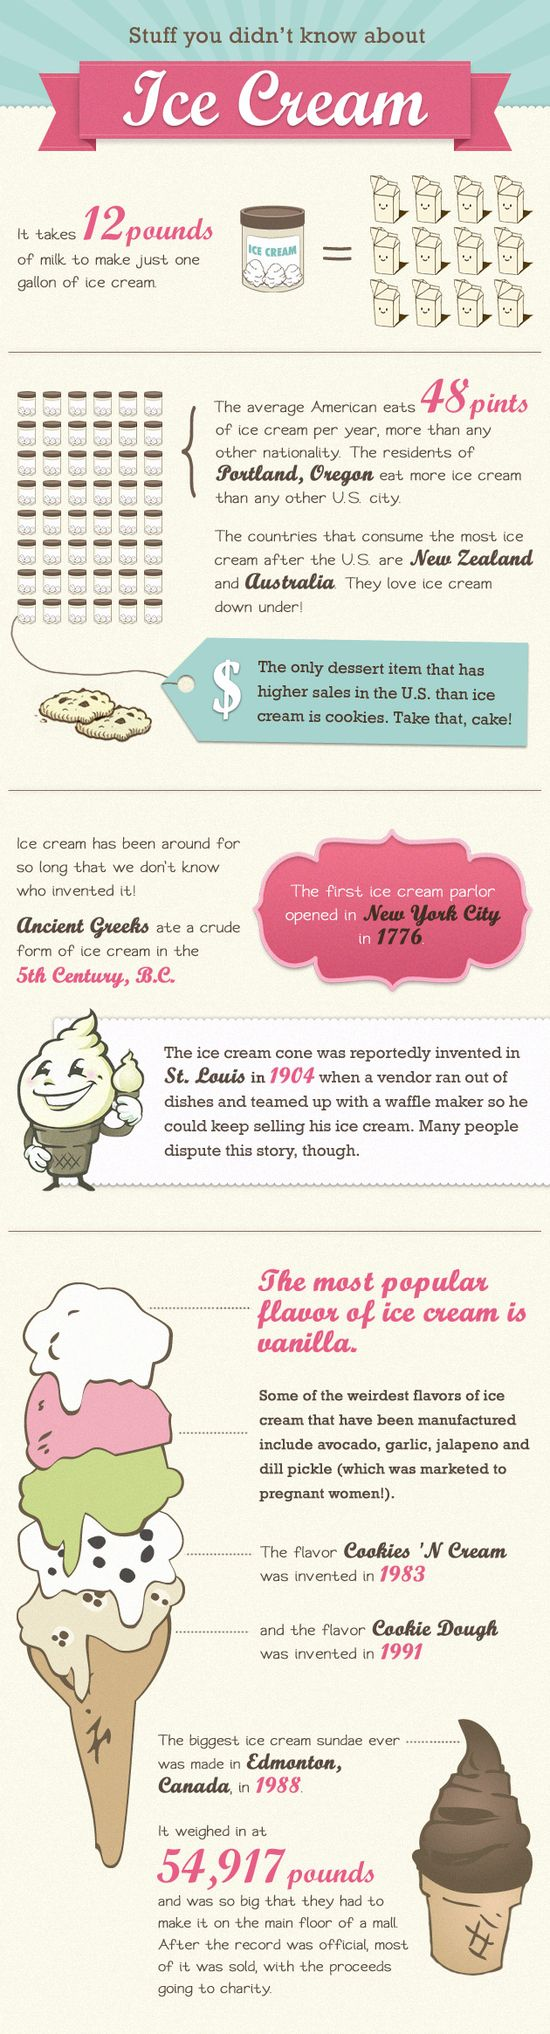 An #infographic packed full of juicy #IceCream information - Find out more: www.finedininglov...